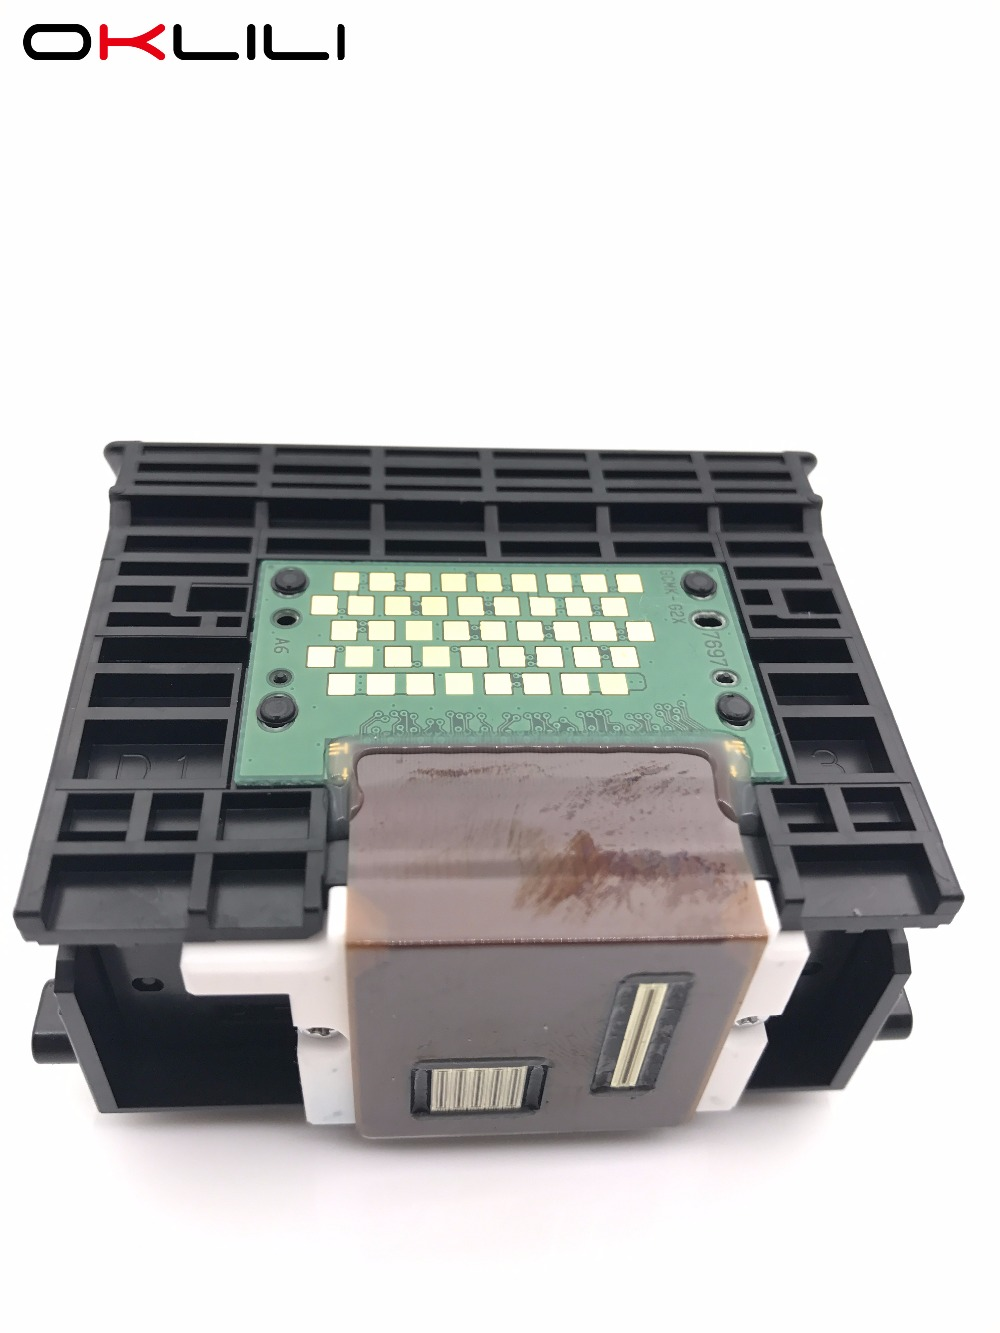 OKLILI ORIGINAL QY6-0070 QY6-0070-000 Printhead Print Head Printer Head for Canon MP510 MP520 MX700 iP3300 iP3500 genuine brand new qy6 0077 printhead print head for canon pro 9500 mark ii printer